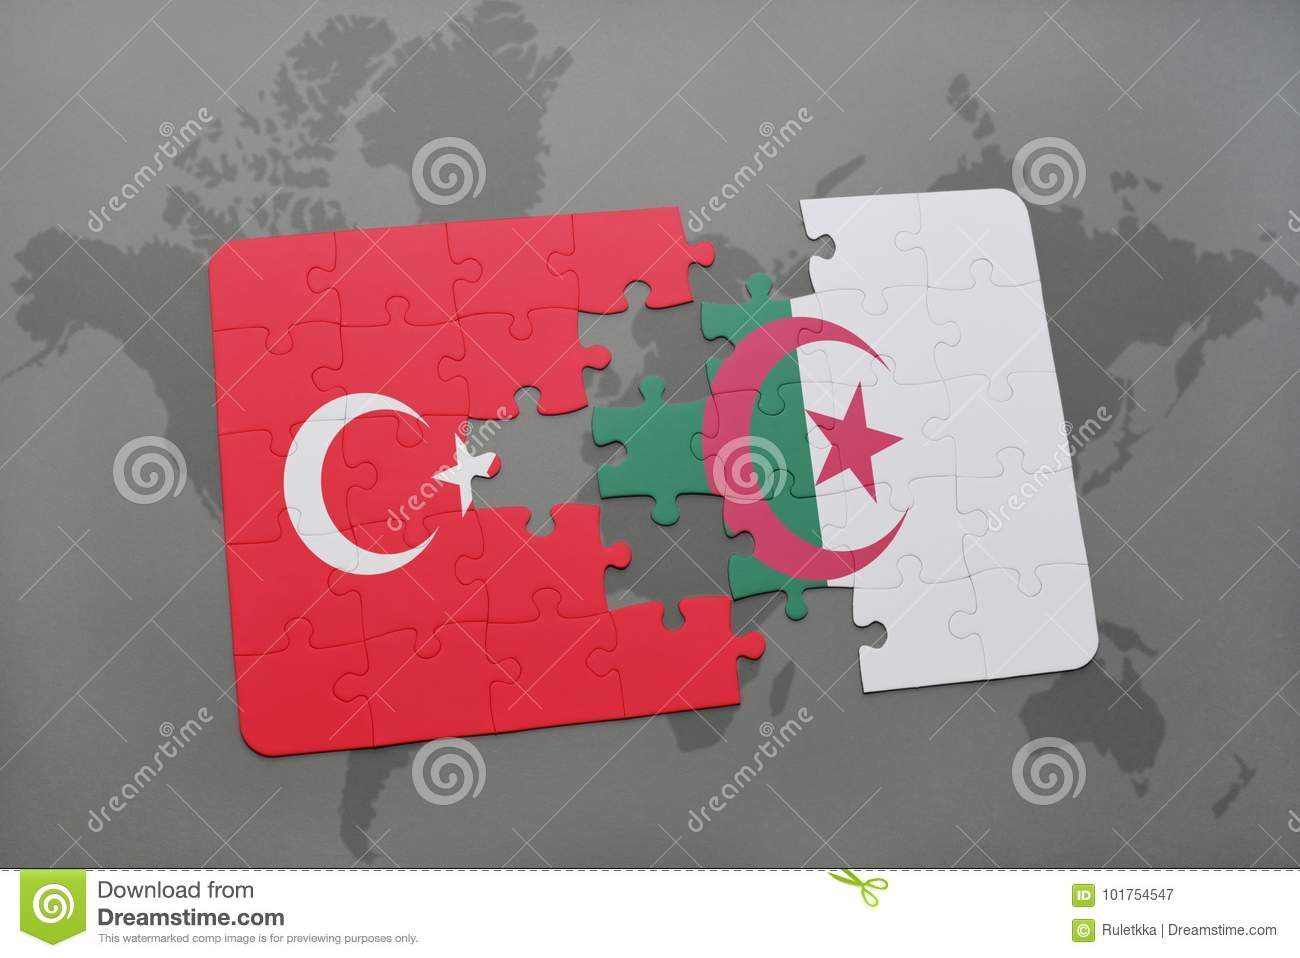 puzzle with the national flag of turkey and algeria on a world map